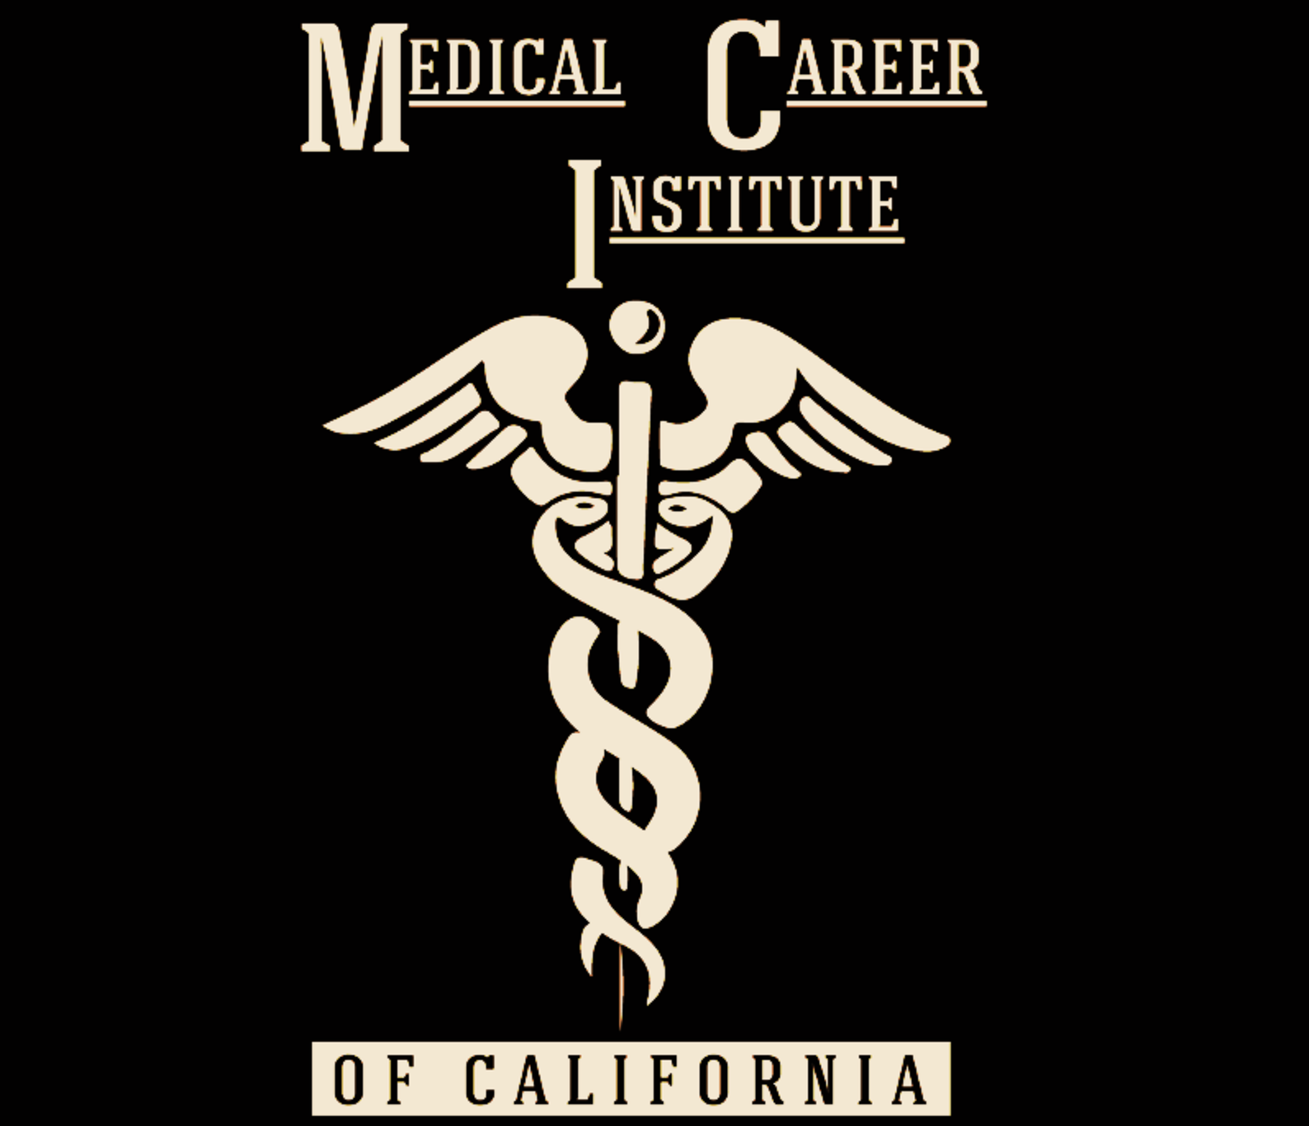 Medical career institute of california about medical career institute of california sterile processing technician certification and training 1betcityfo Image collections